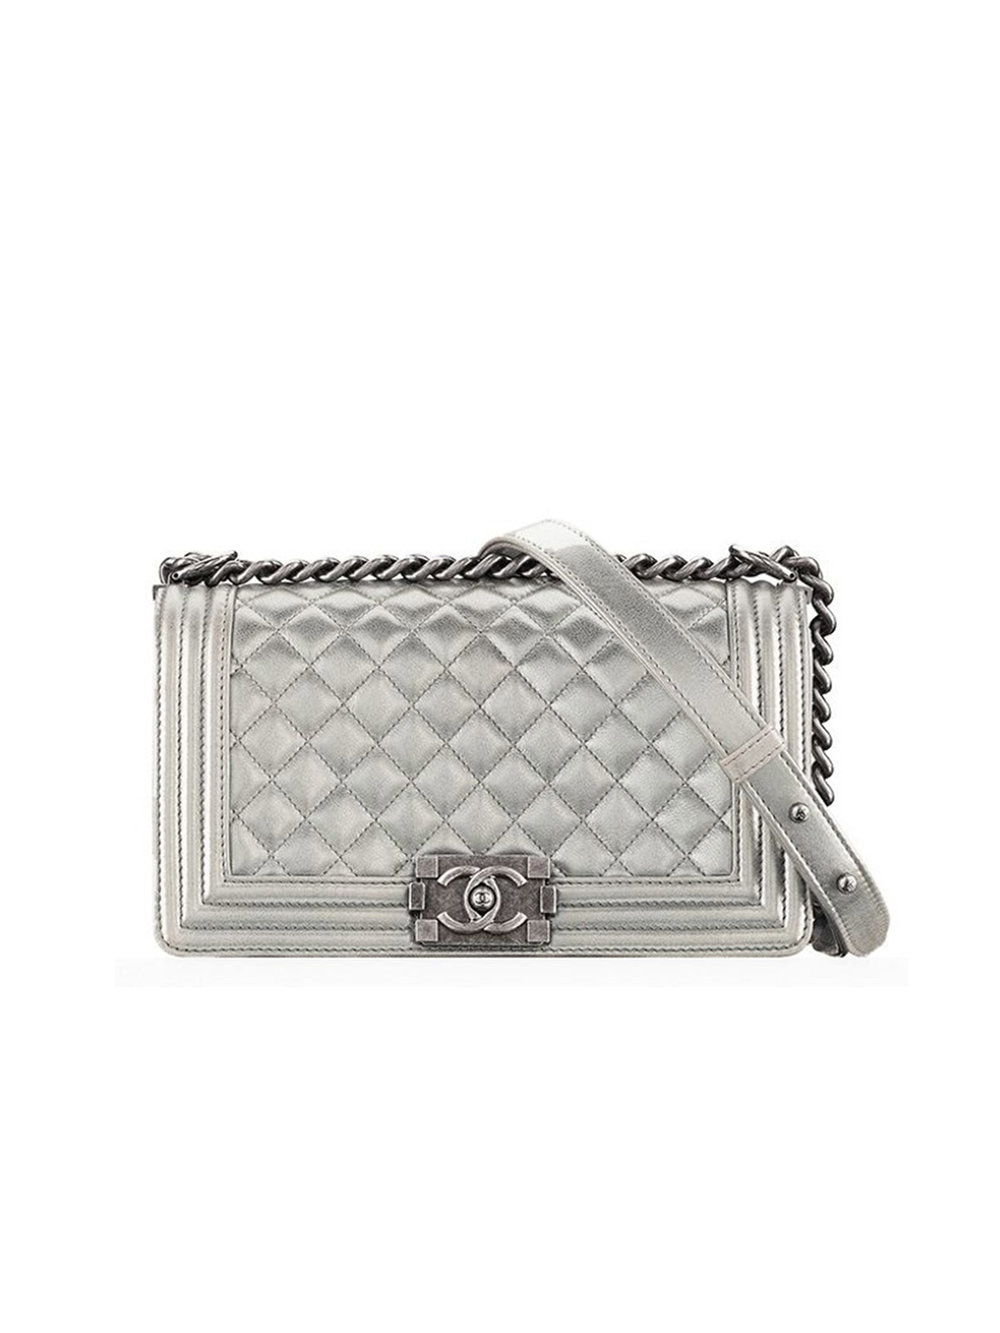 CHANEL   Metallic Silver Leather Purse  Borrow $250 / Retail $5,400